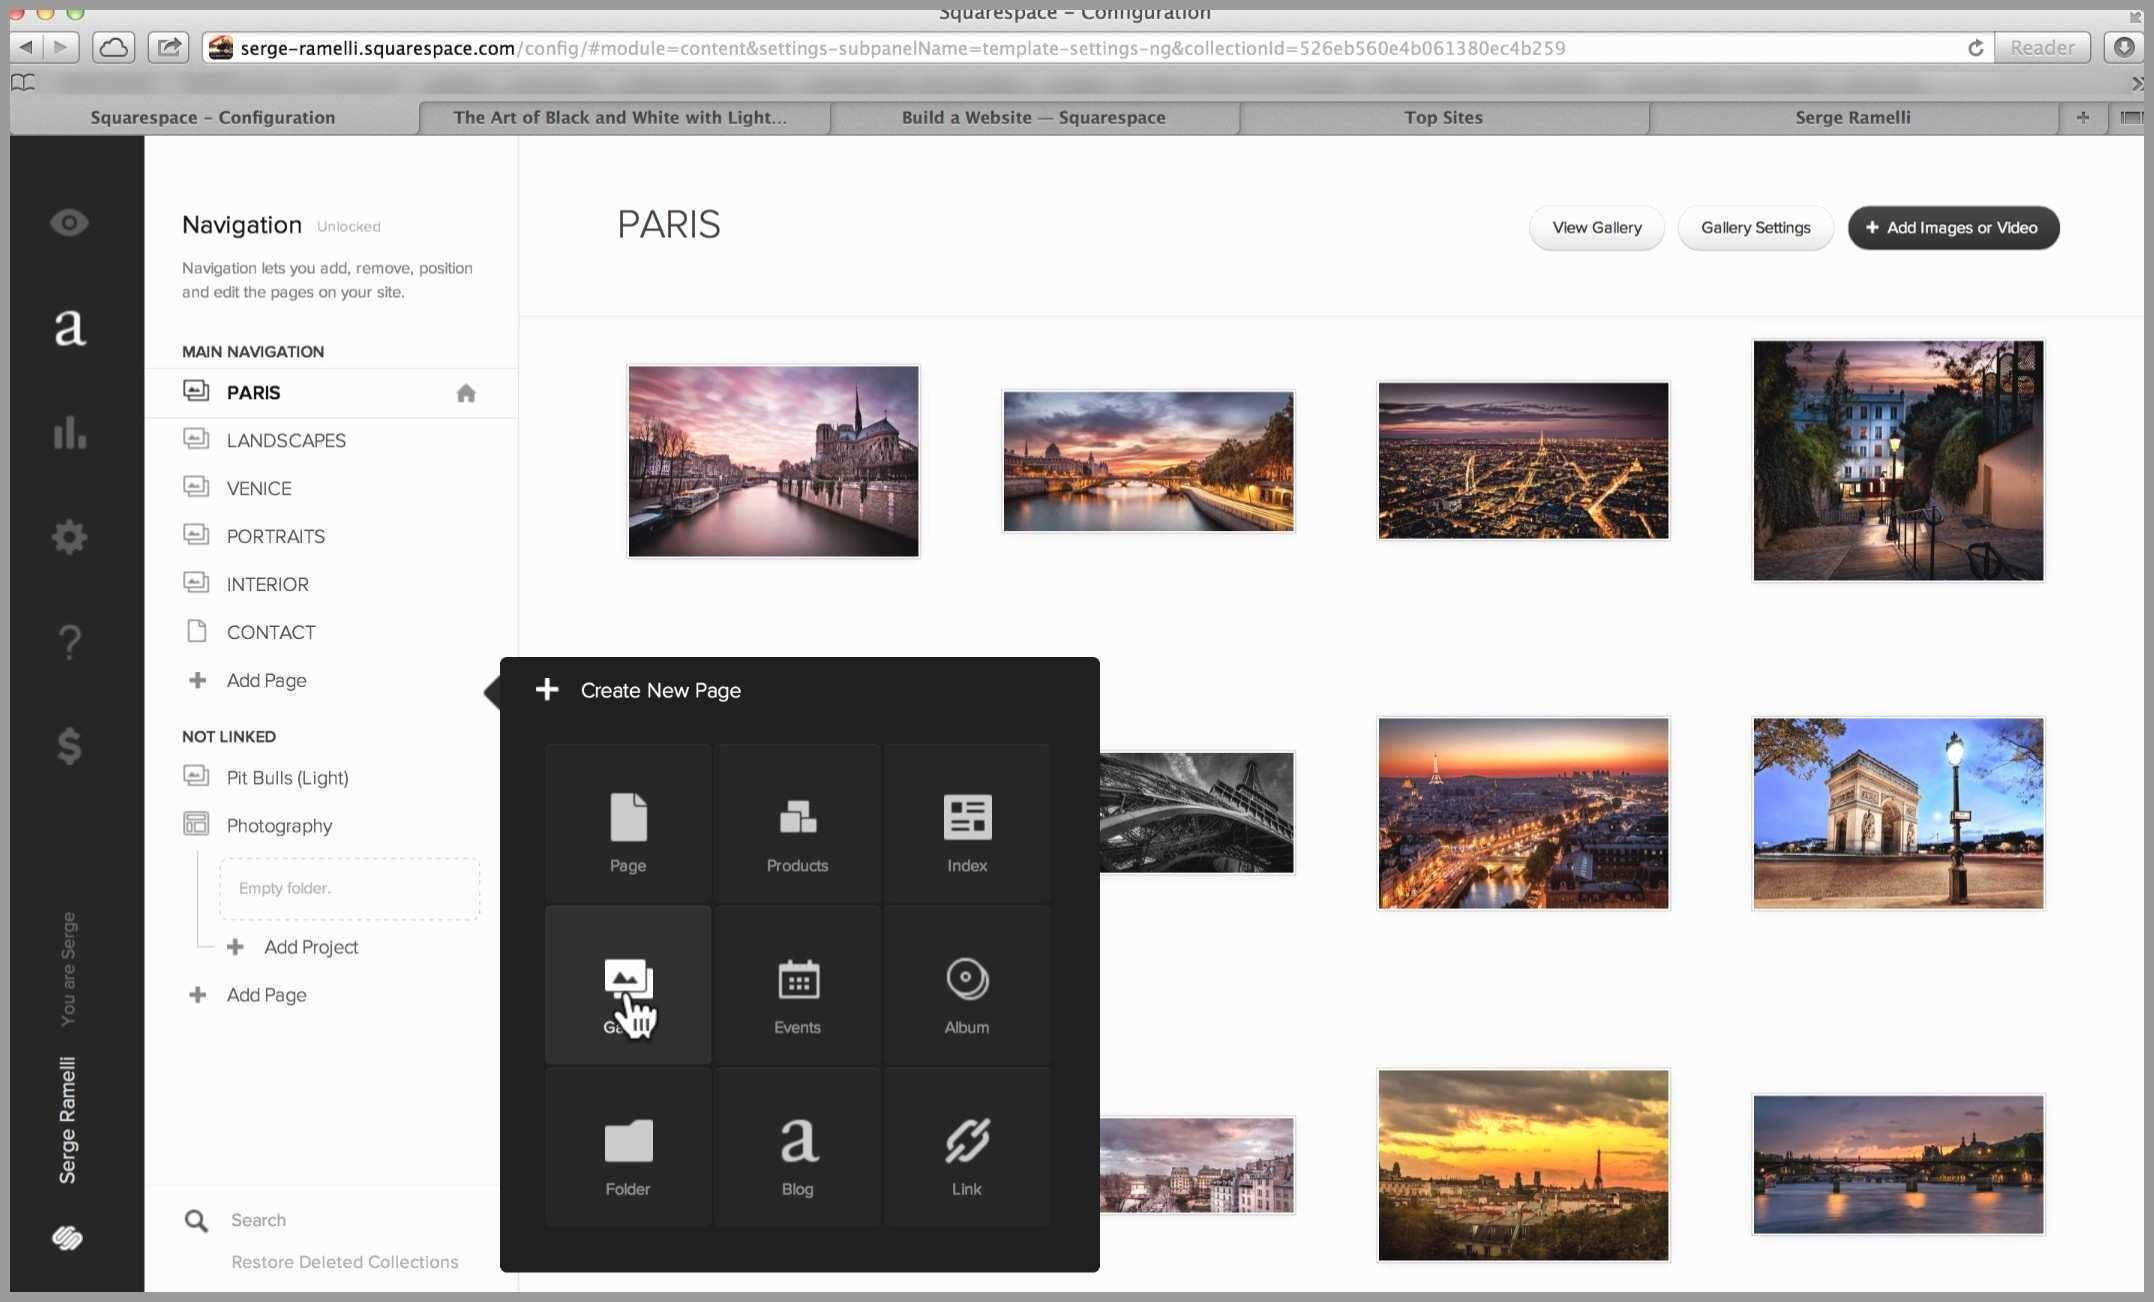 Best Squarespace Template For Photographers 2017